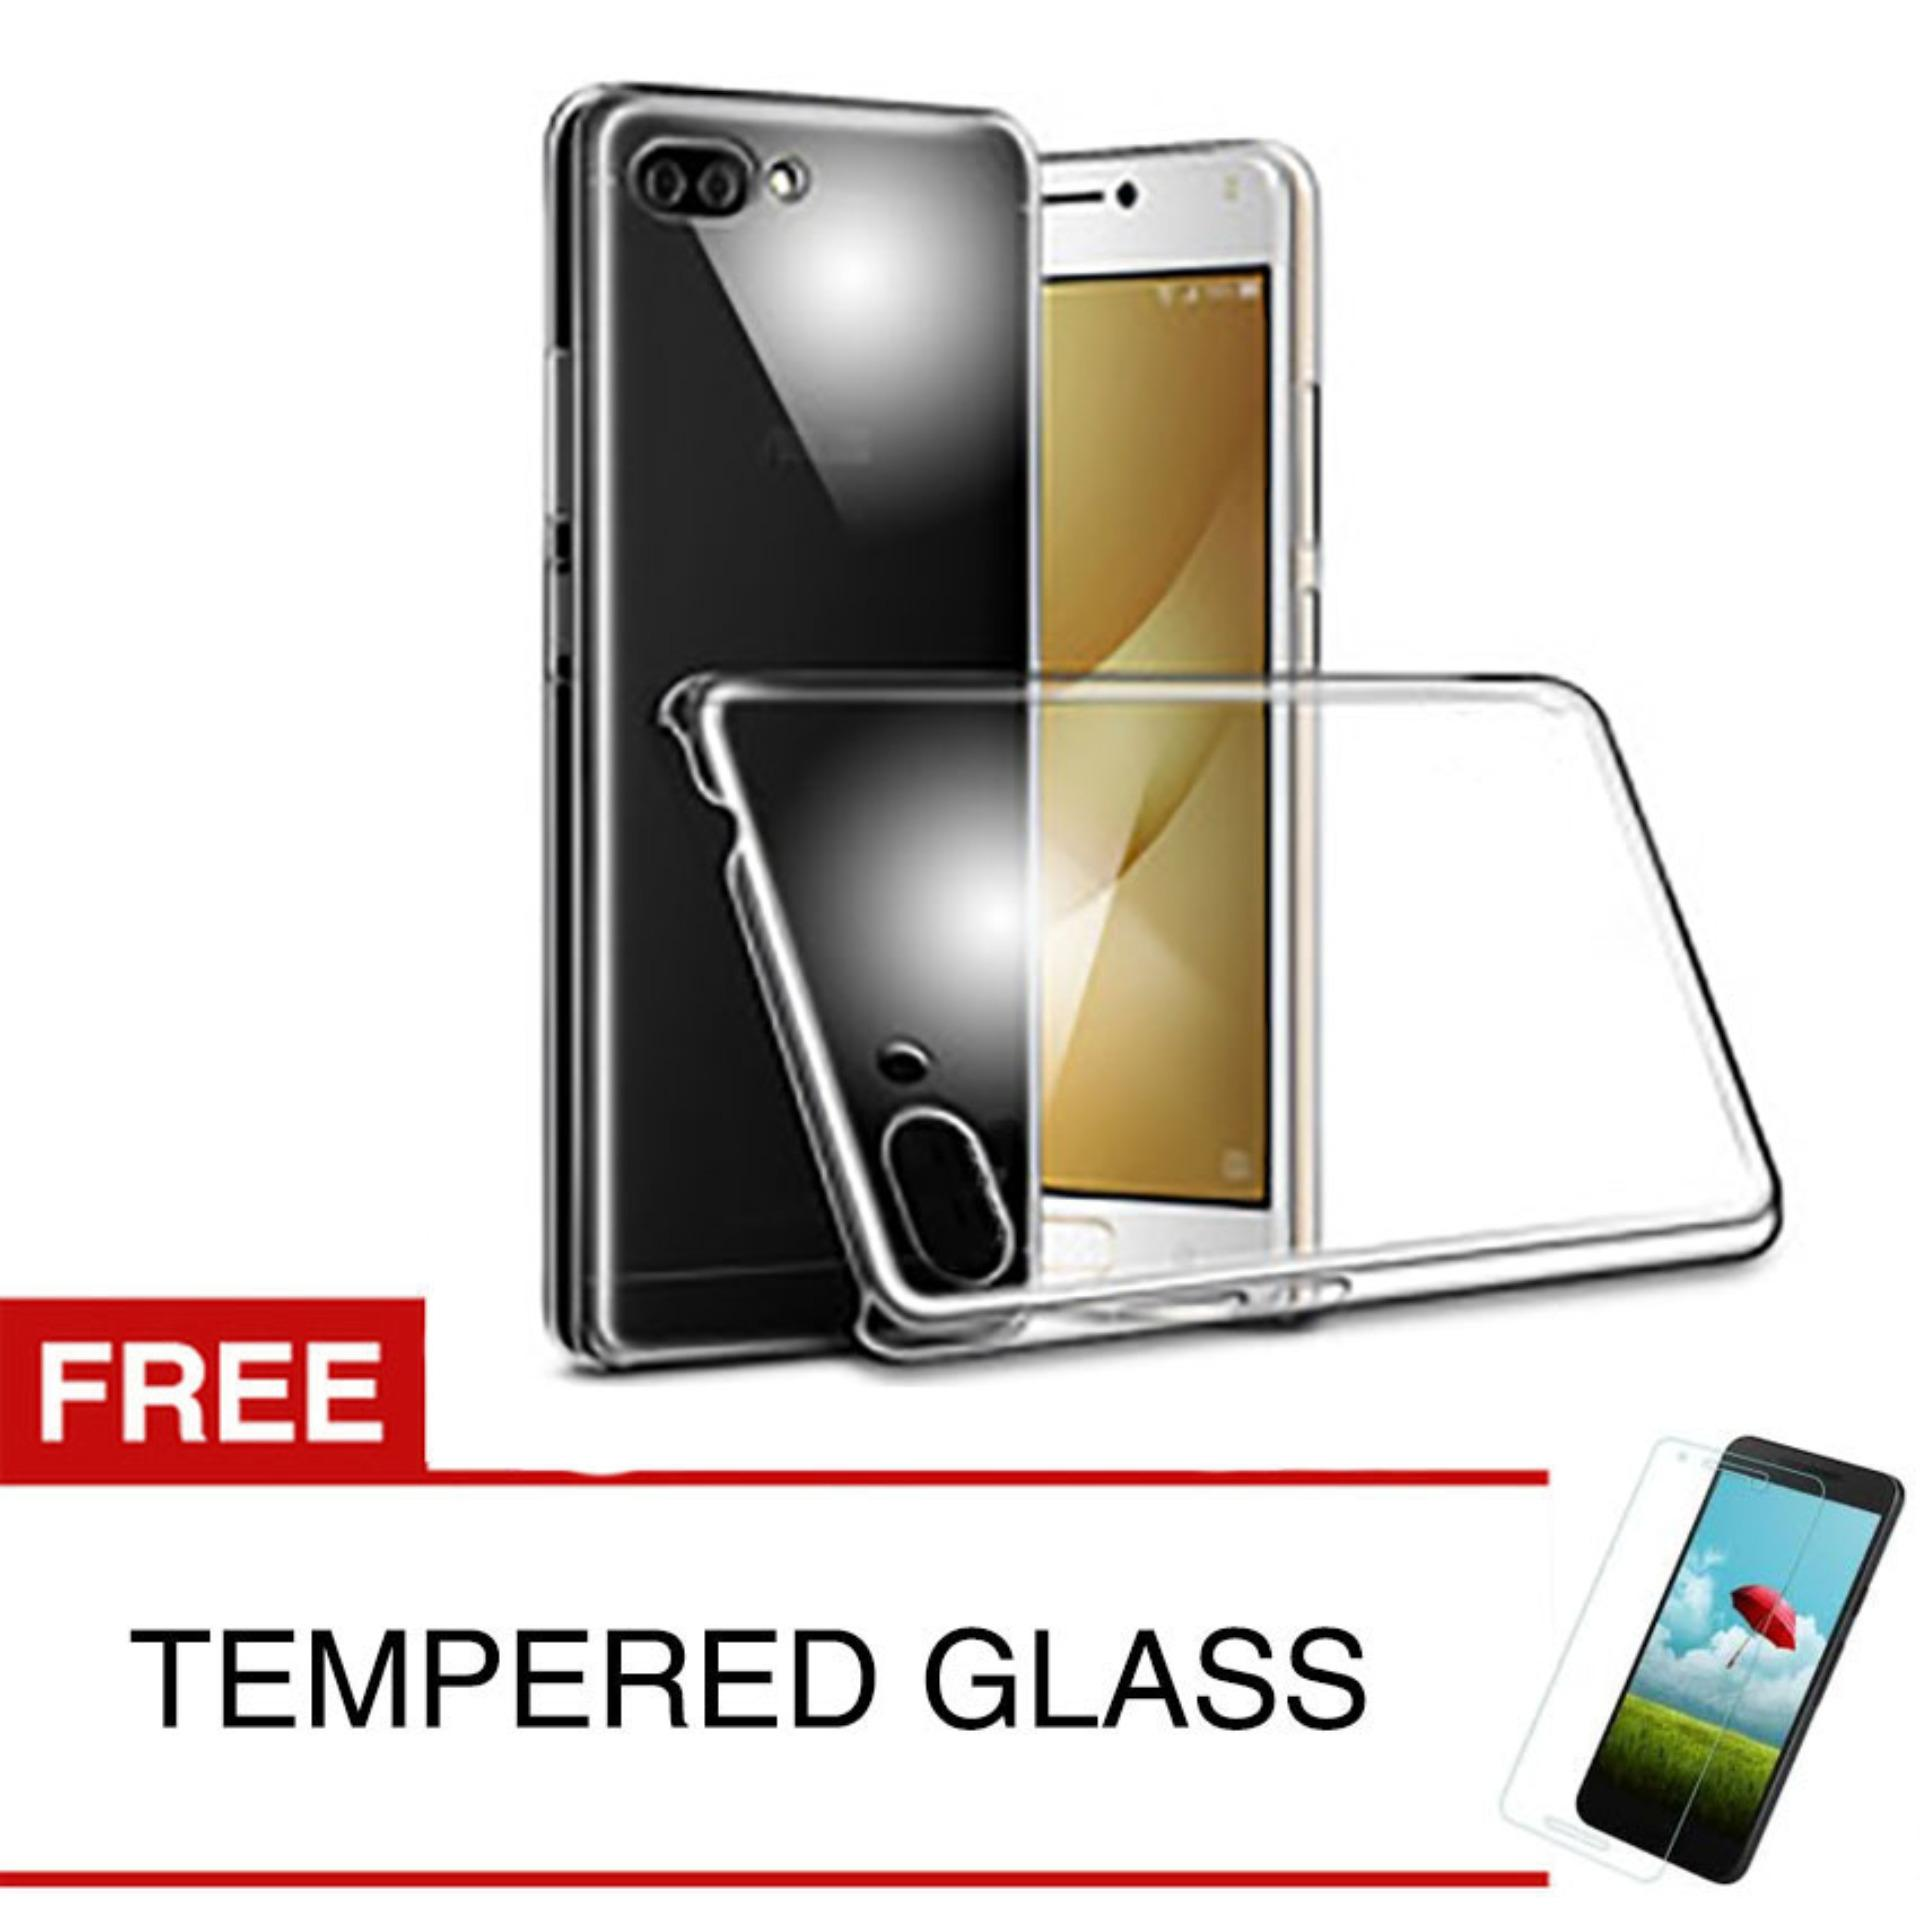 Toko Crystal Case For Asus Zenfone 4 Max Pro Zc554Kl Clear Hardcase Gratis Tempered Glass Online Terpercaya